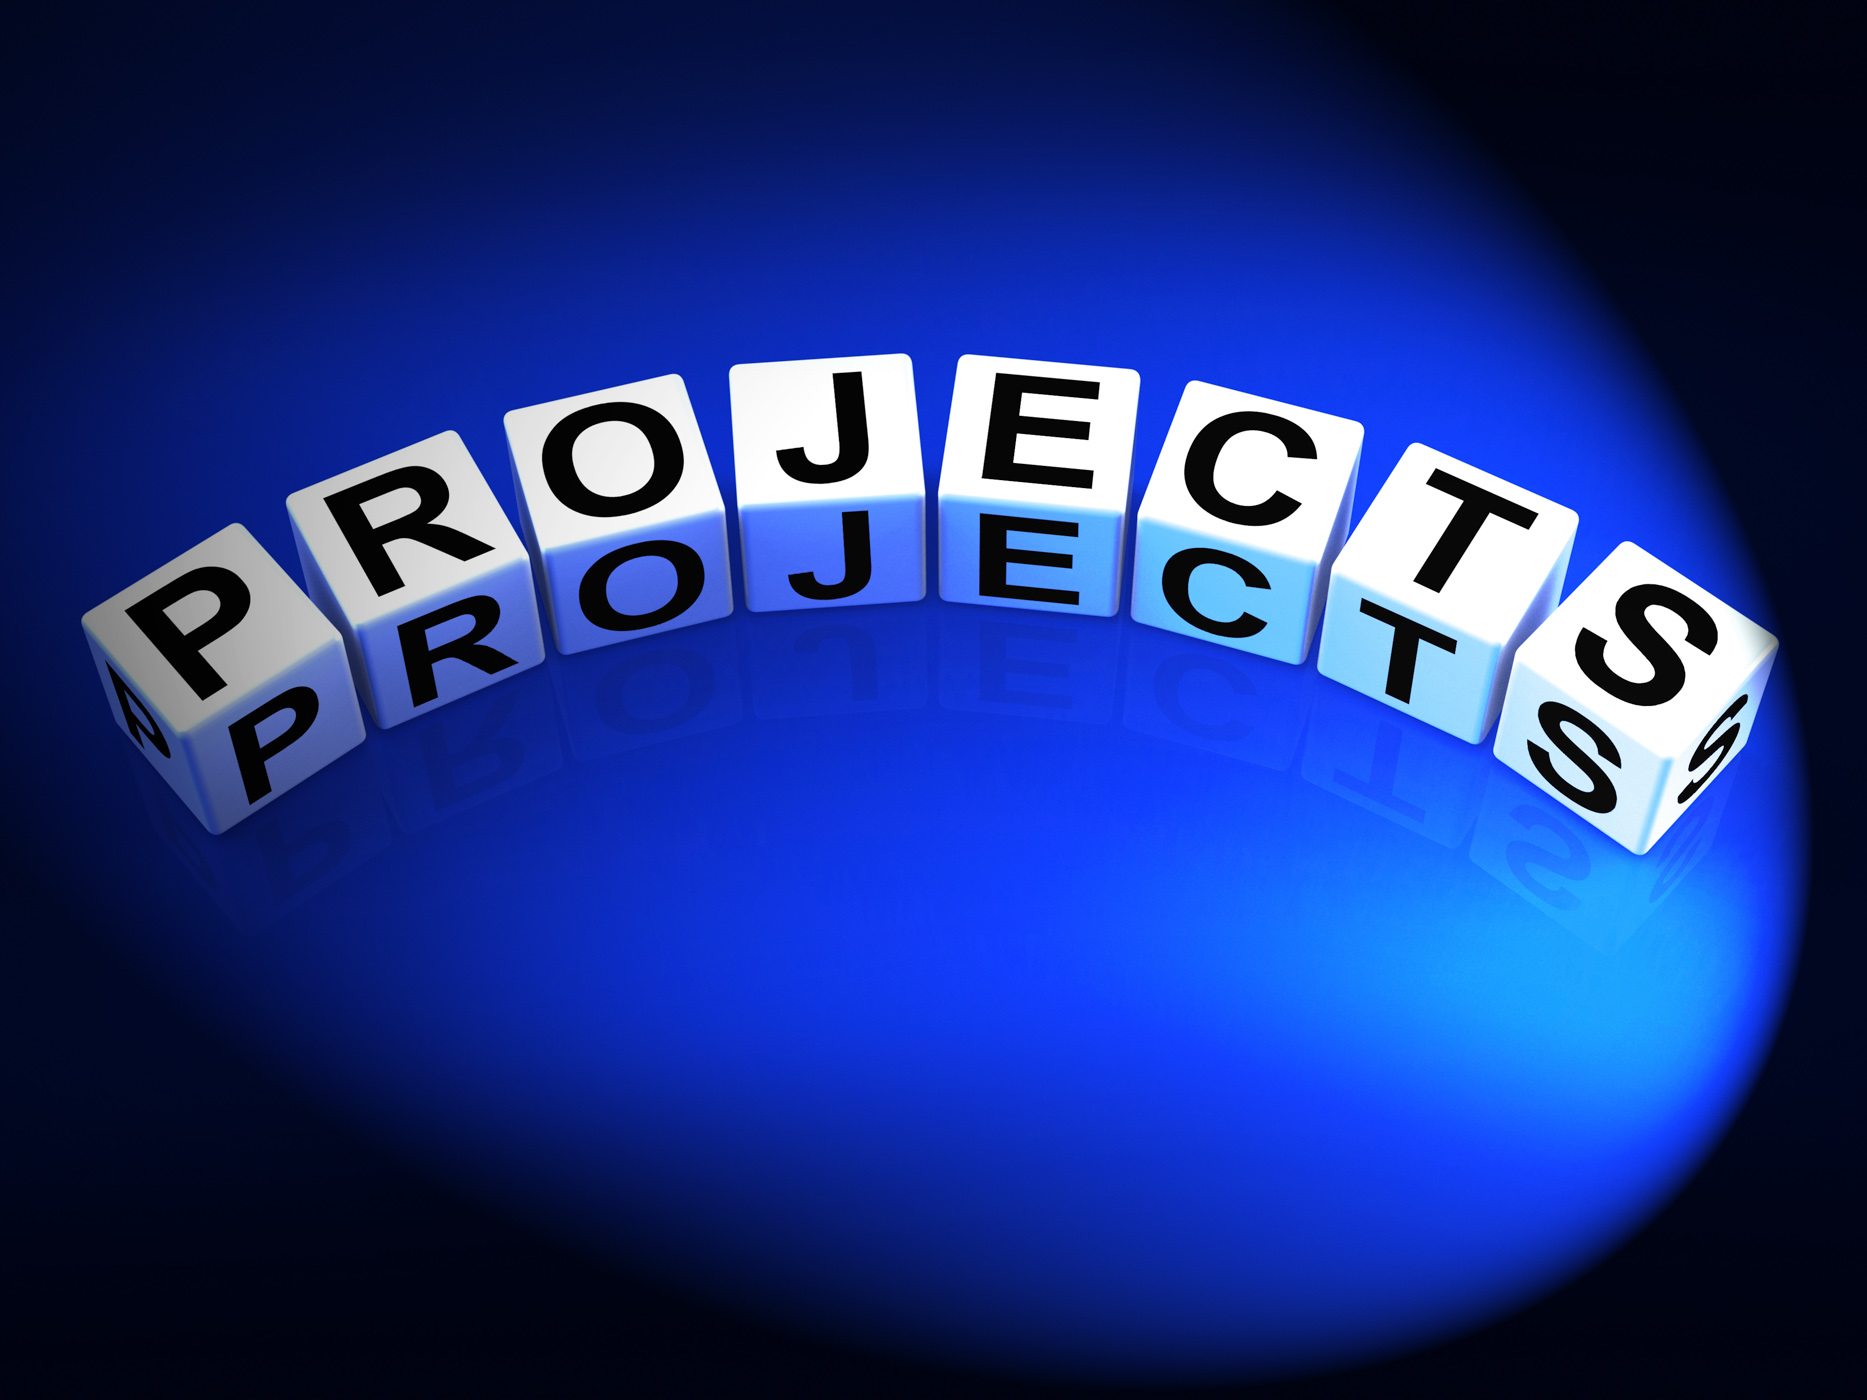 Projects dice represent ideas activities tasks and enterprises photo